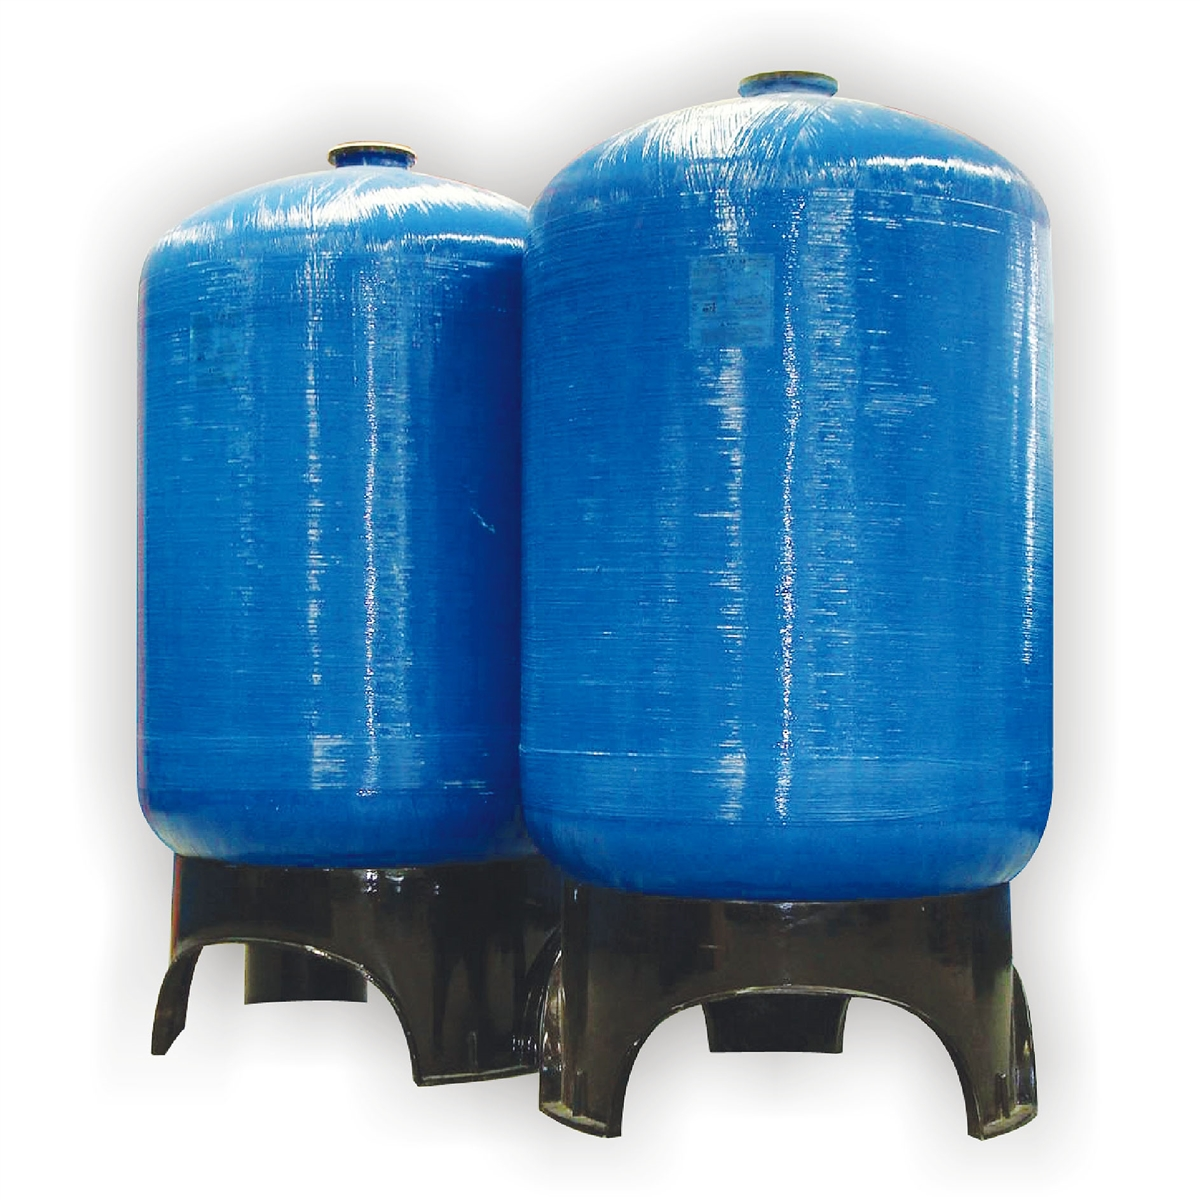 Softener Filtration System Tank 30 Quot X 72 Quot 6 Quot Top And